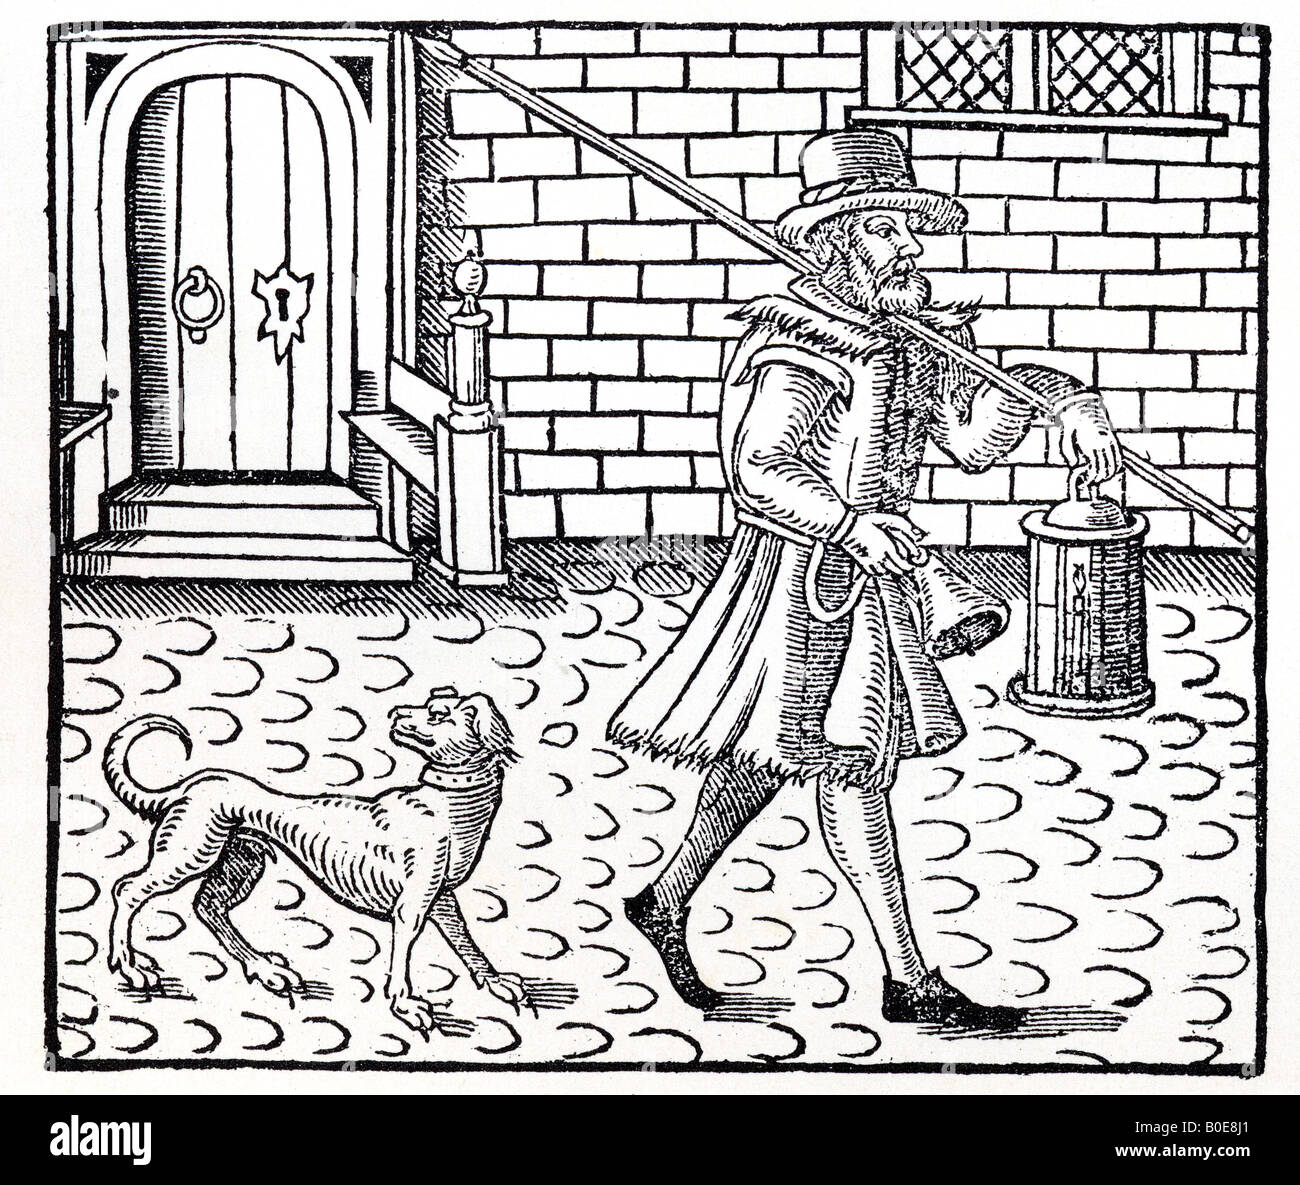 ELIZABETHAN NIGHTWATCHMAN with his dog in a woodcut engraving - Stock Image